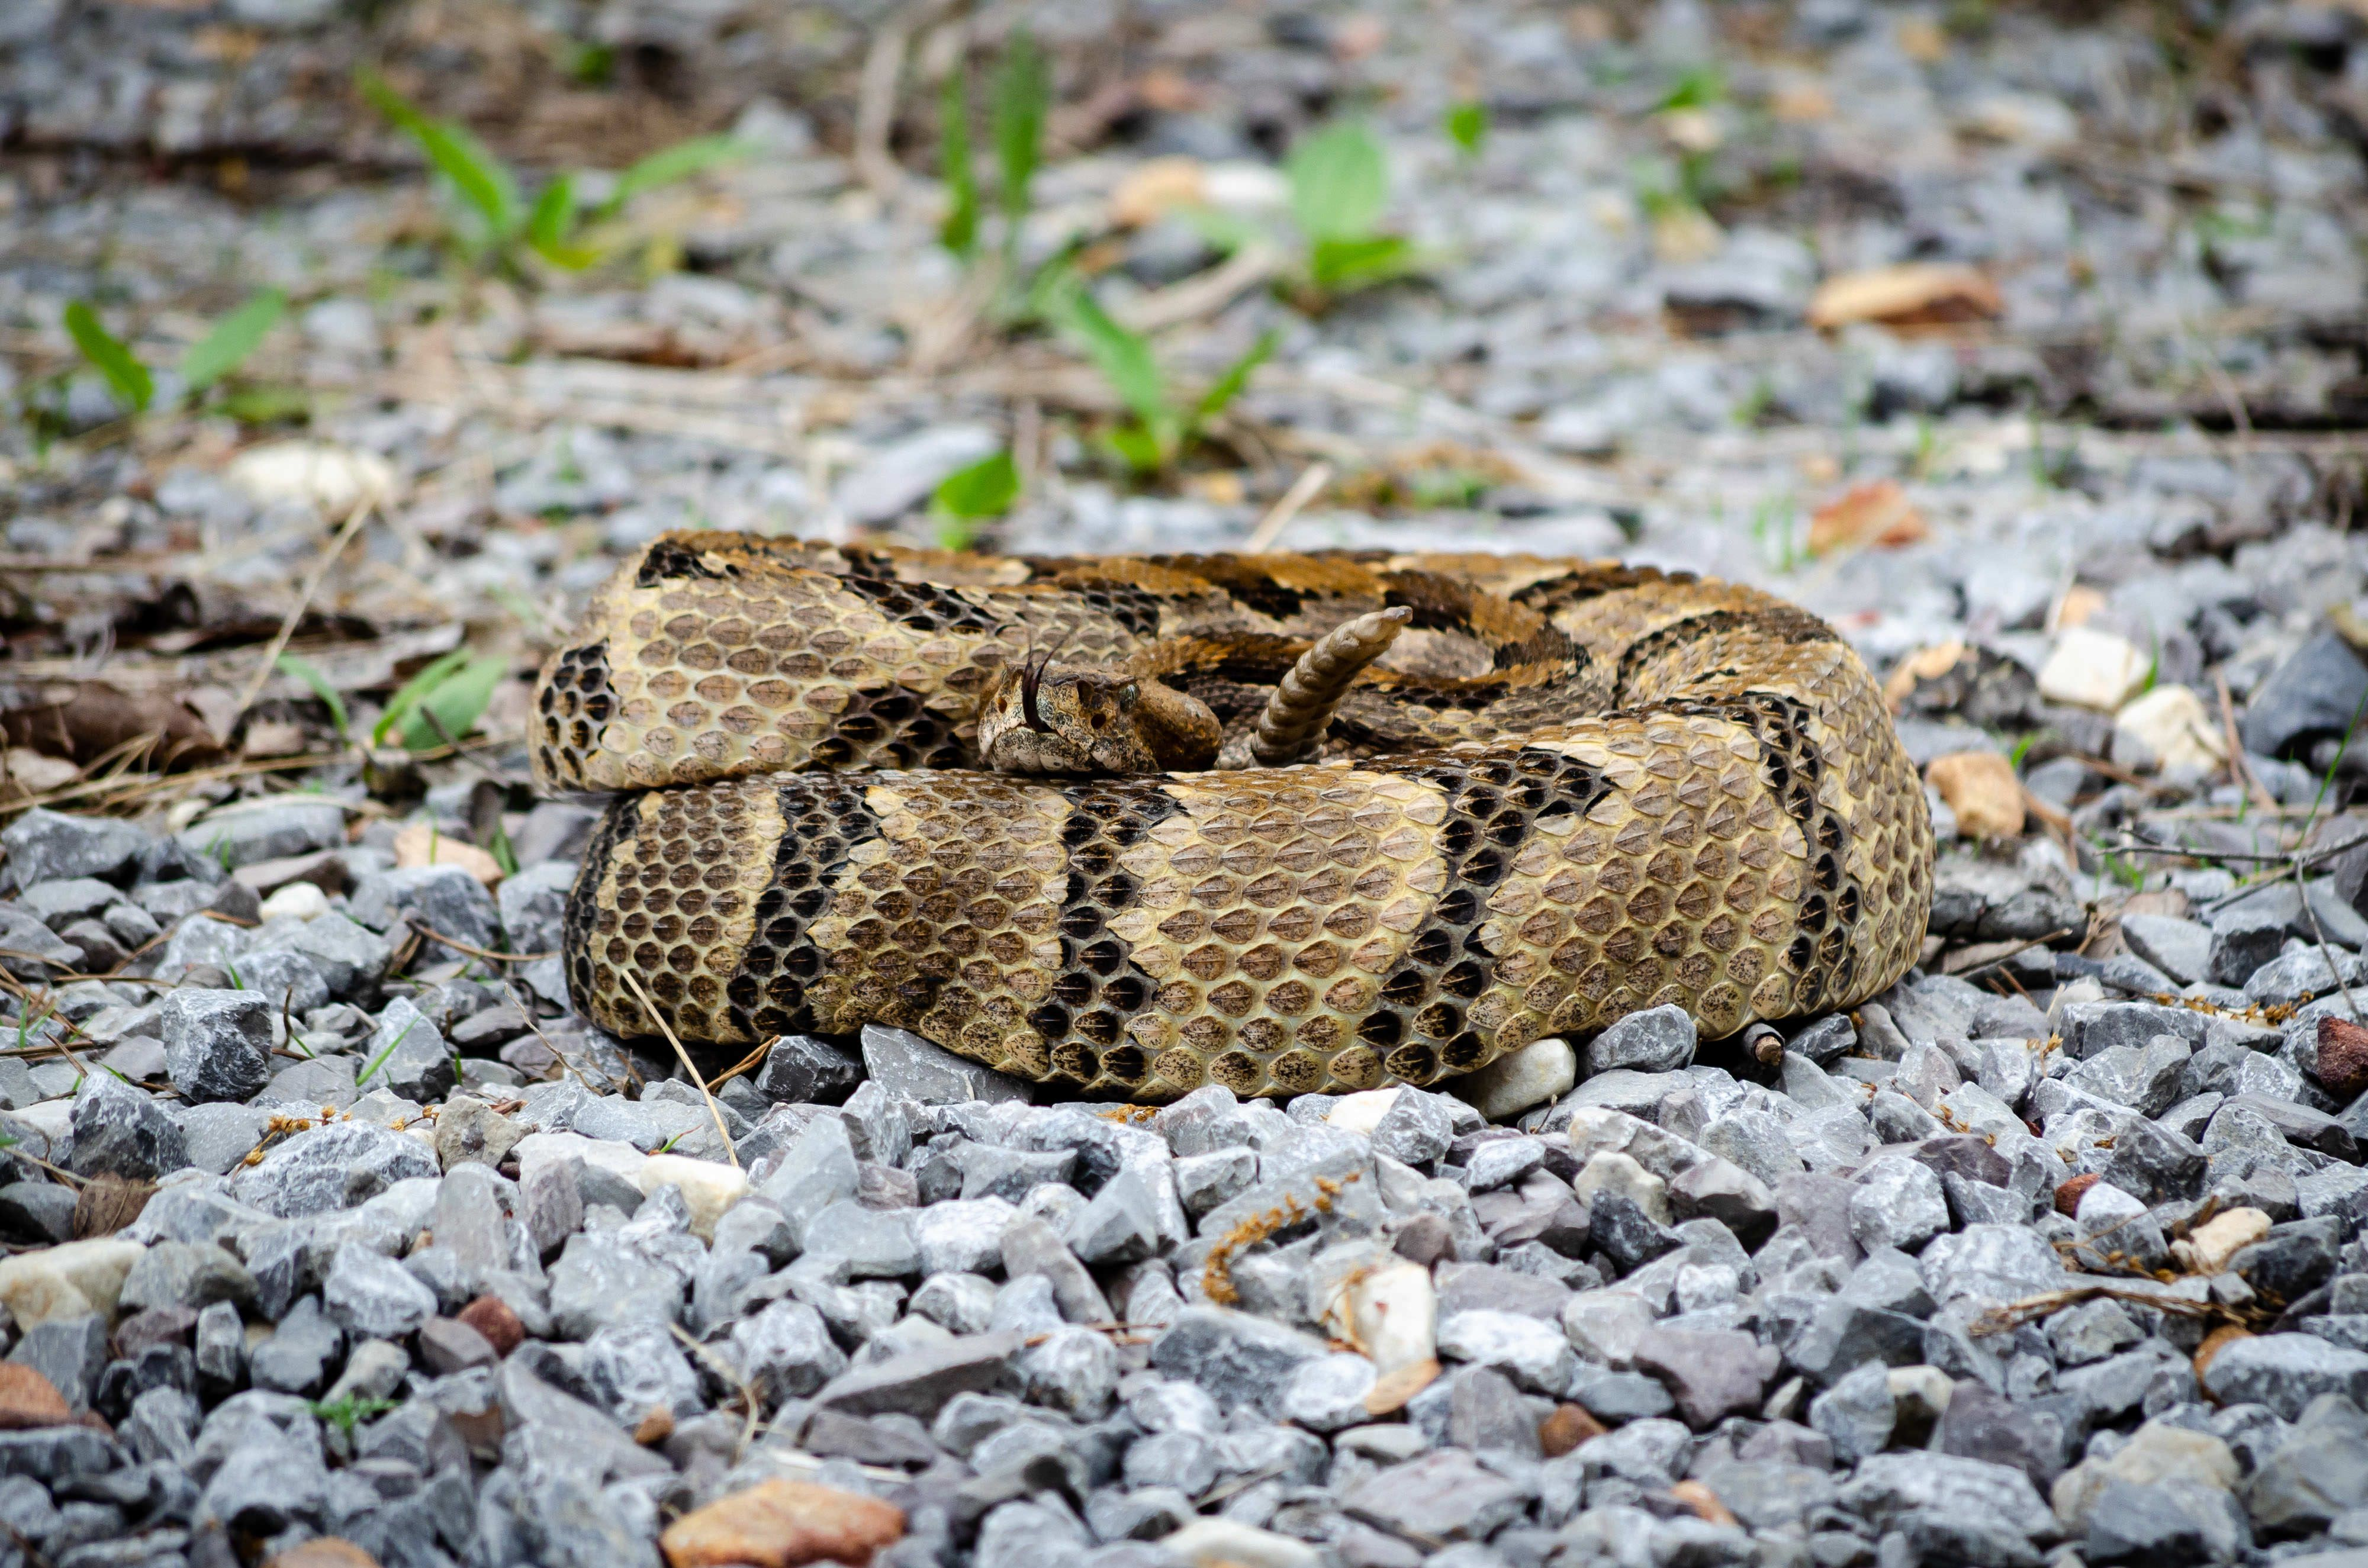 A coiled timber rattlesnake.